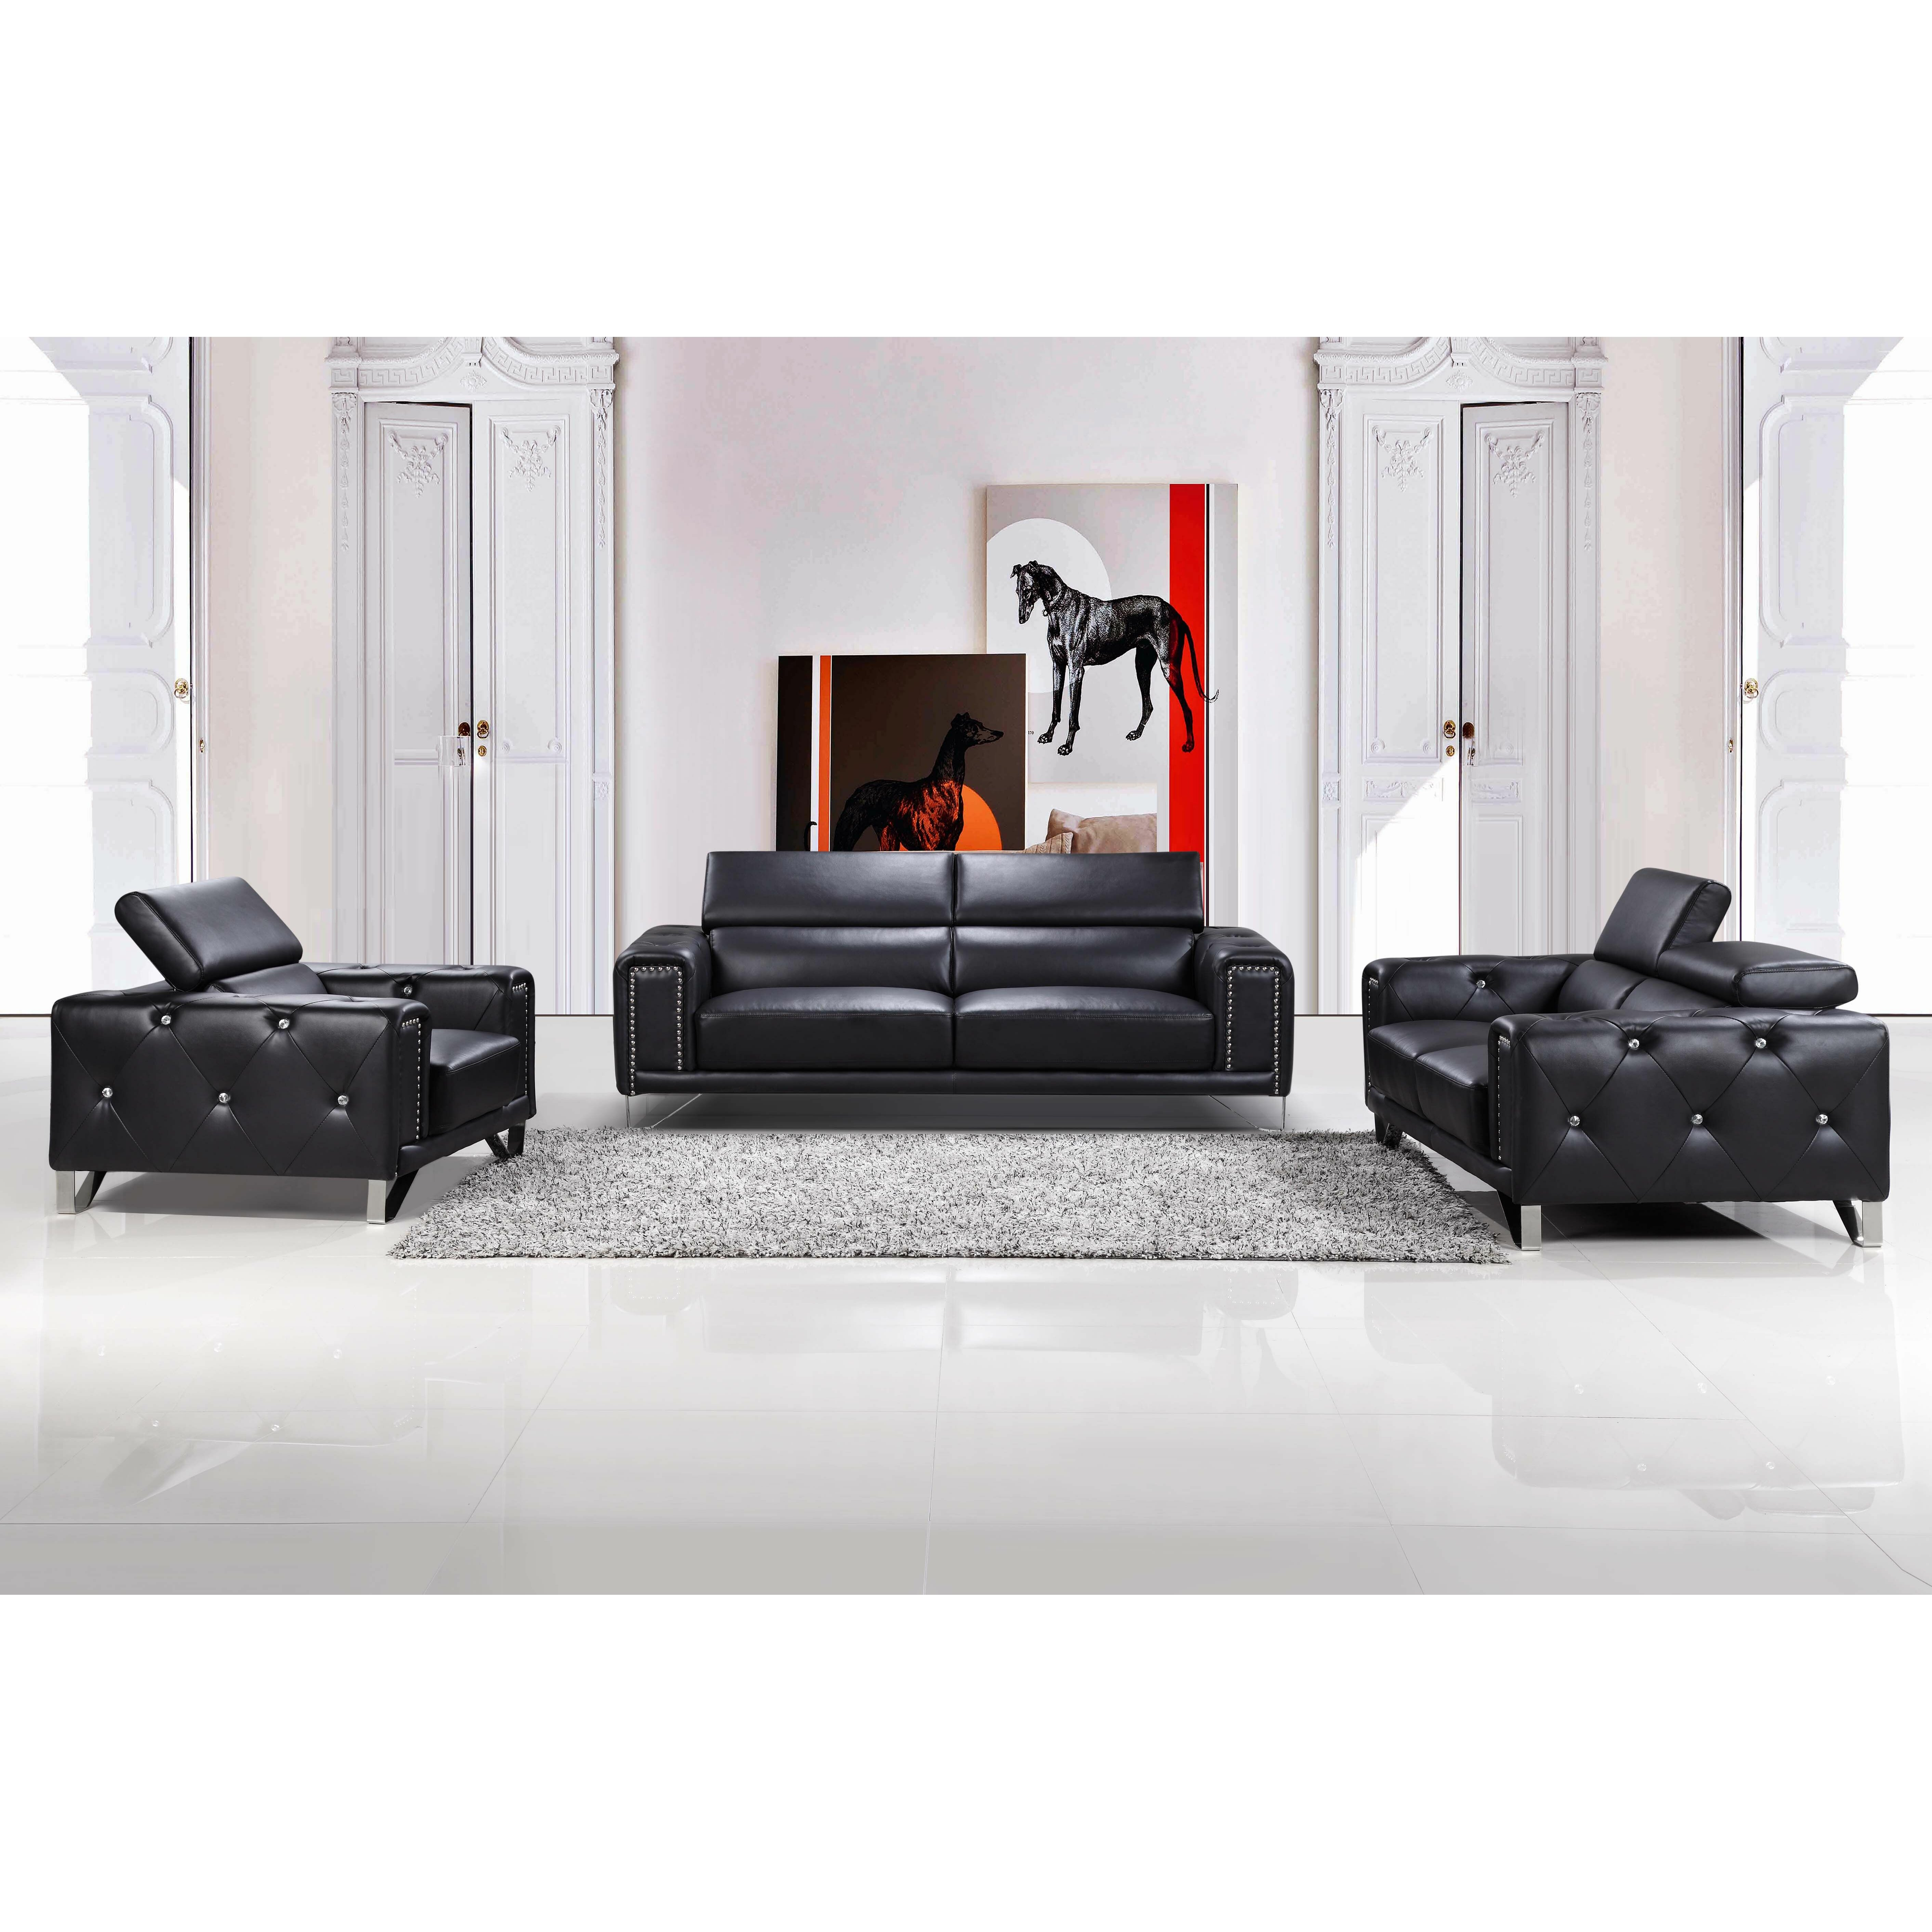 3 piece living room set wayfair for 3 piece living room set